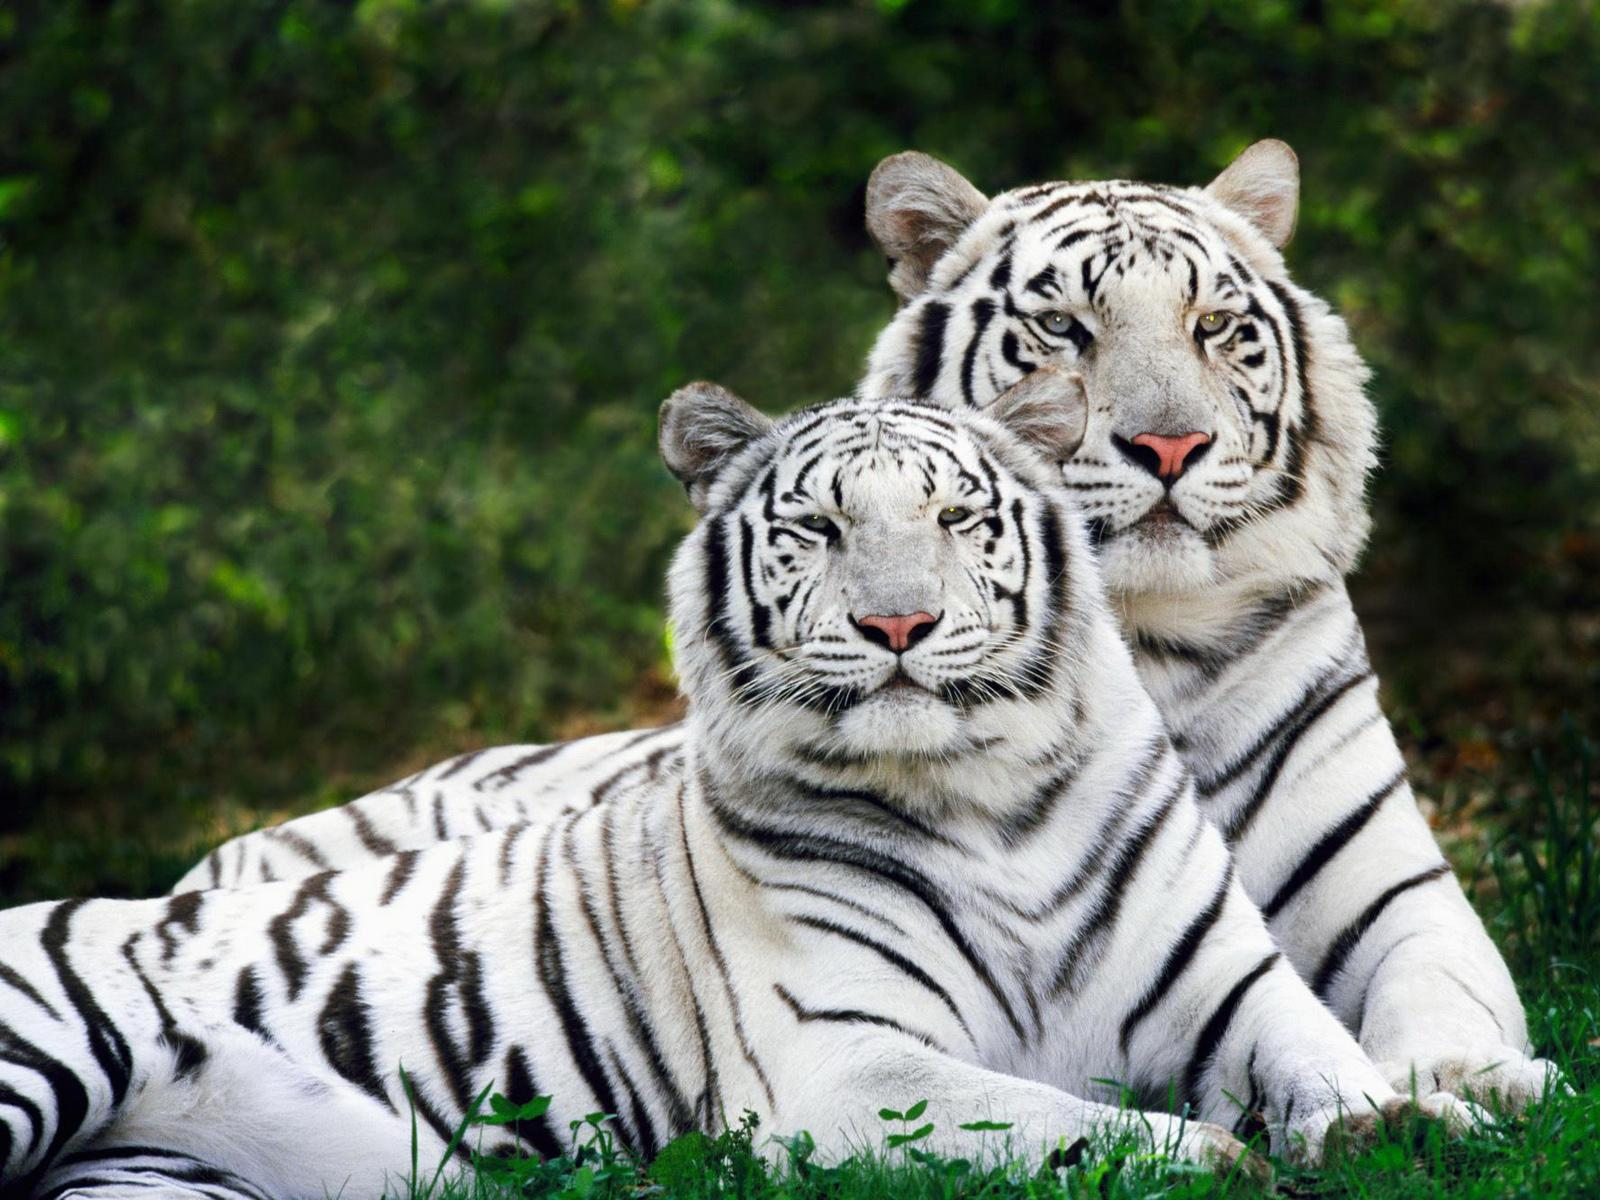 of Bengal have pink noses, white-to-creme colored fur and black, grey